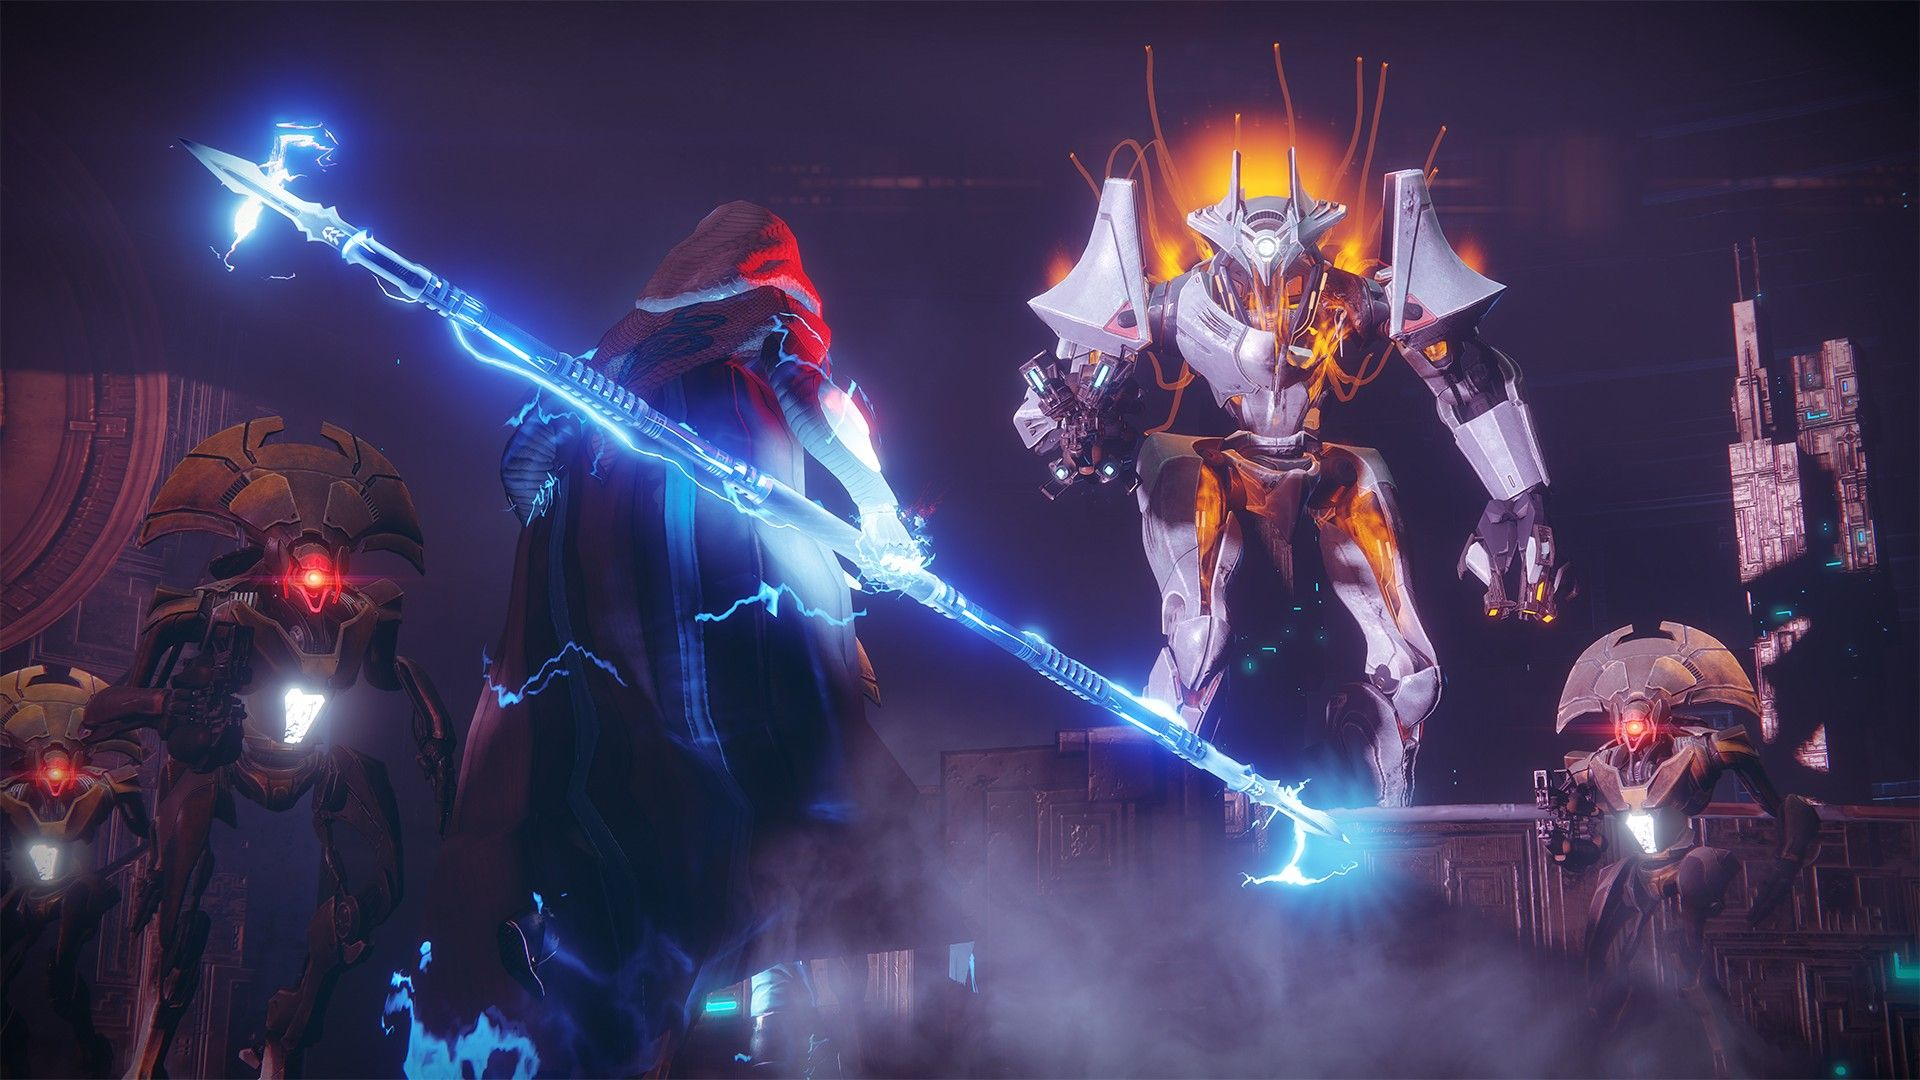 Destiny 2 Arcstrider Wallpaper HD Wallpaper Destiny game Xbox 1920x1080